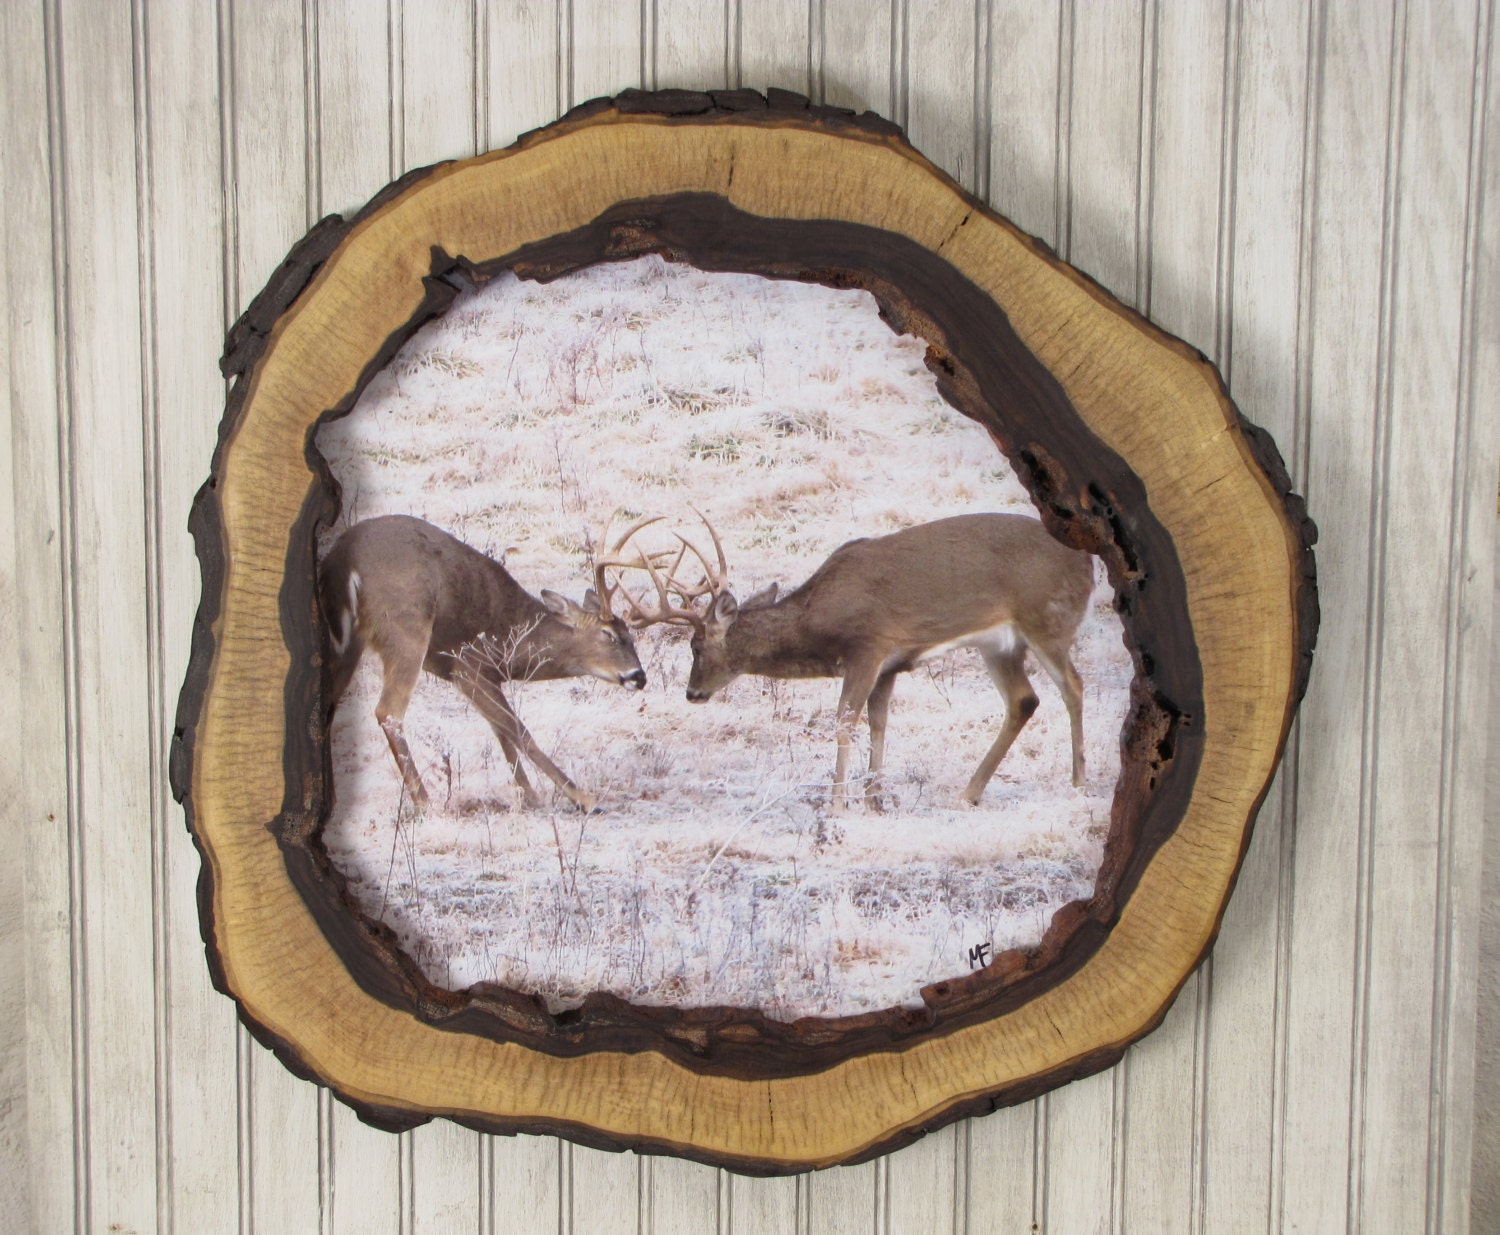 Hollow log picture frame walnut tree slice photo frame for Hollow tree trunk ideas